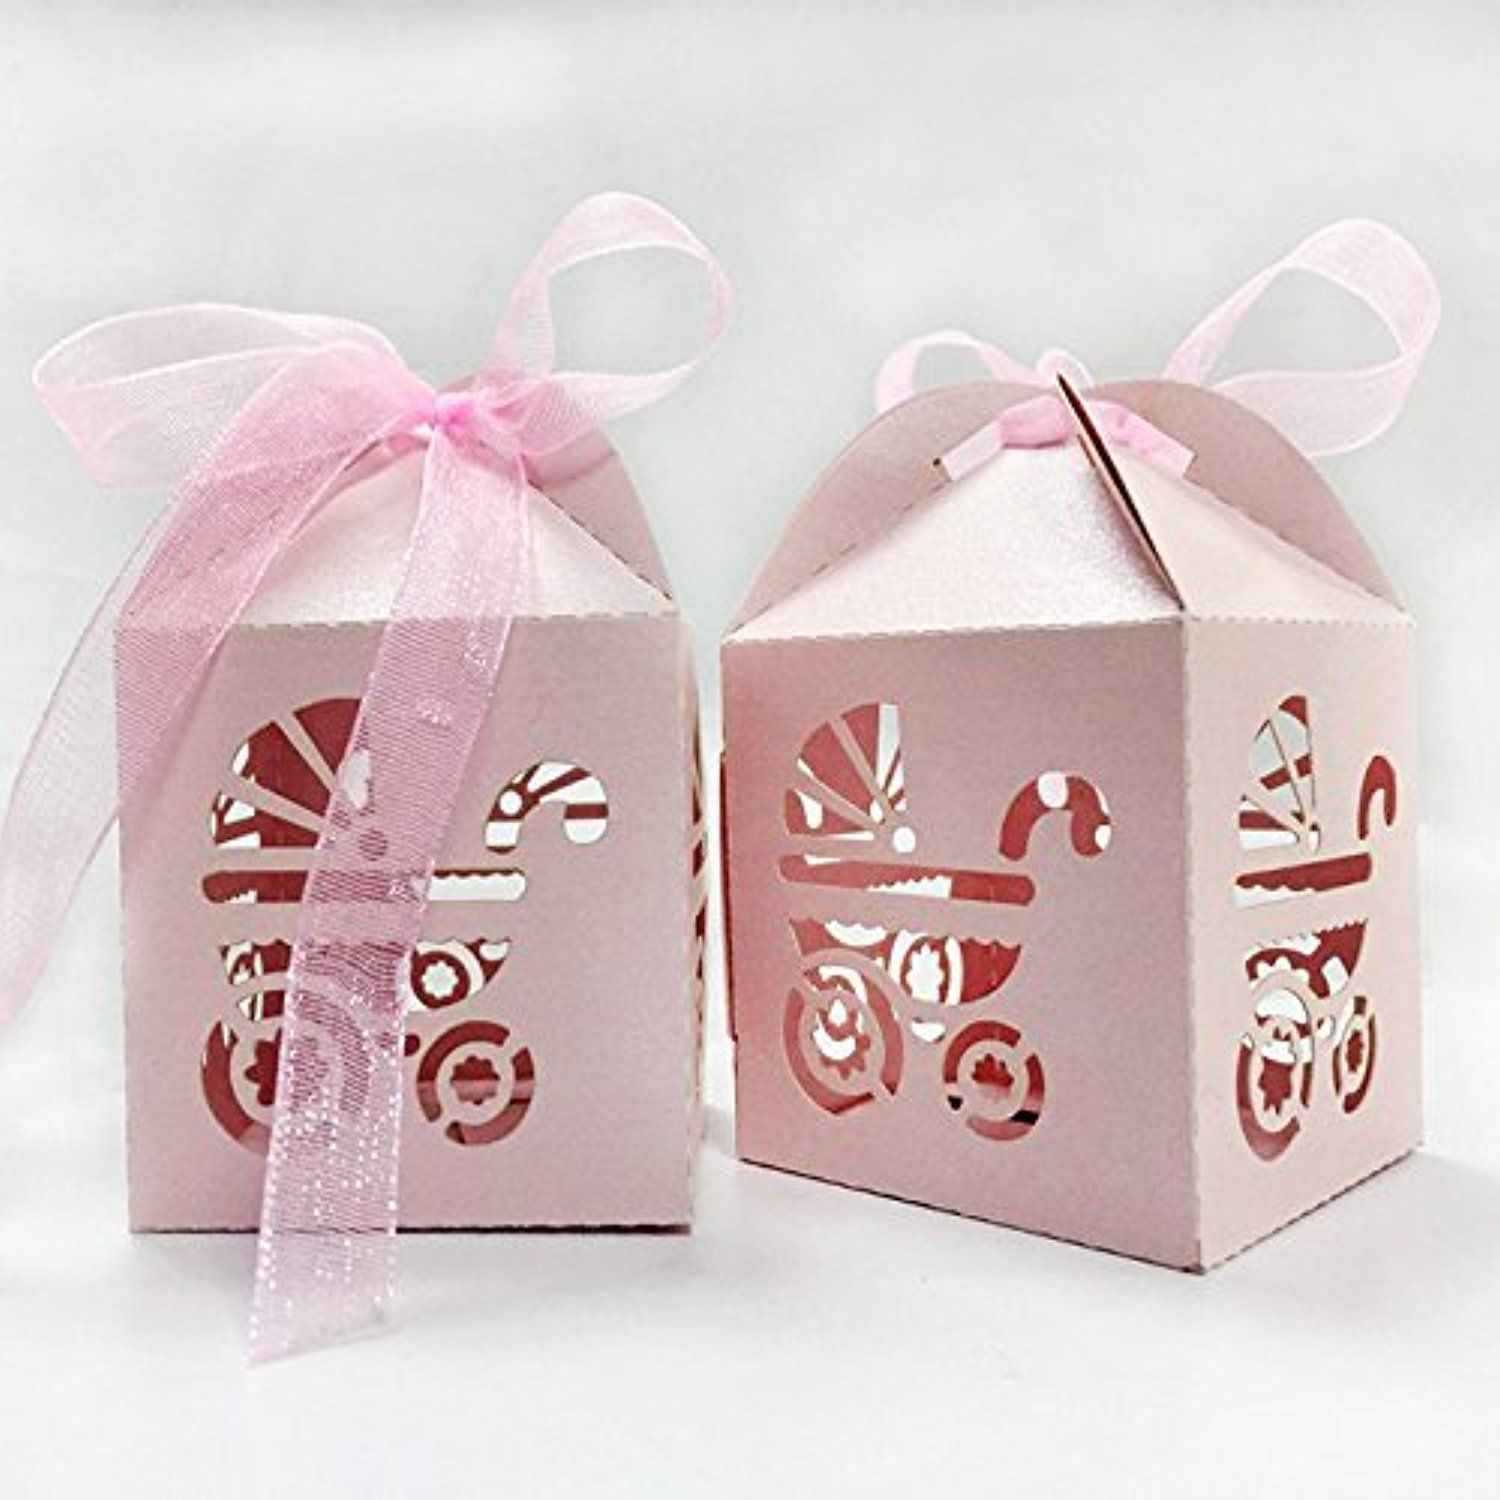 PONATIA 50pcs/Lot Laser Cut Pearl Paper Party Wedding Favor Ribbon ...